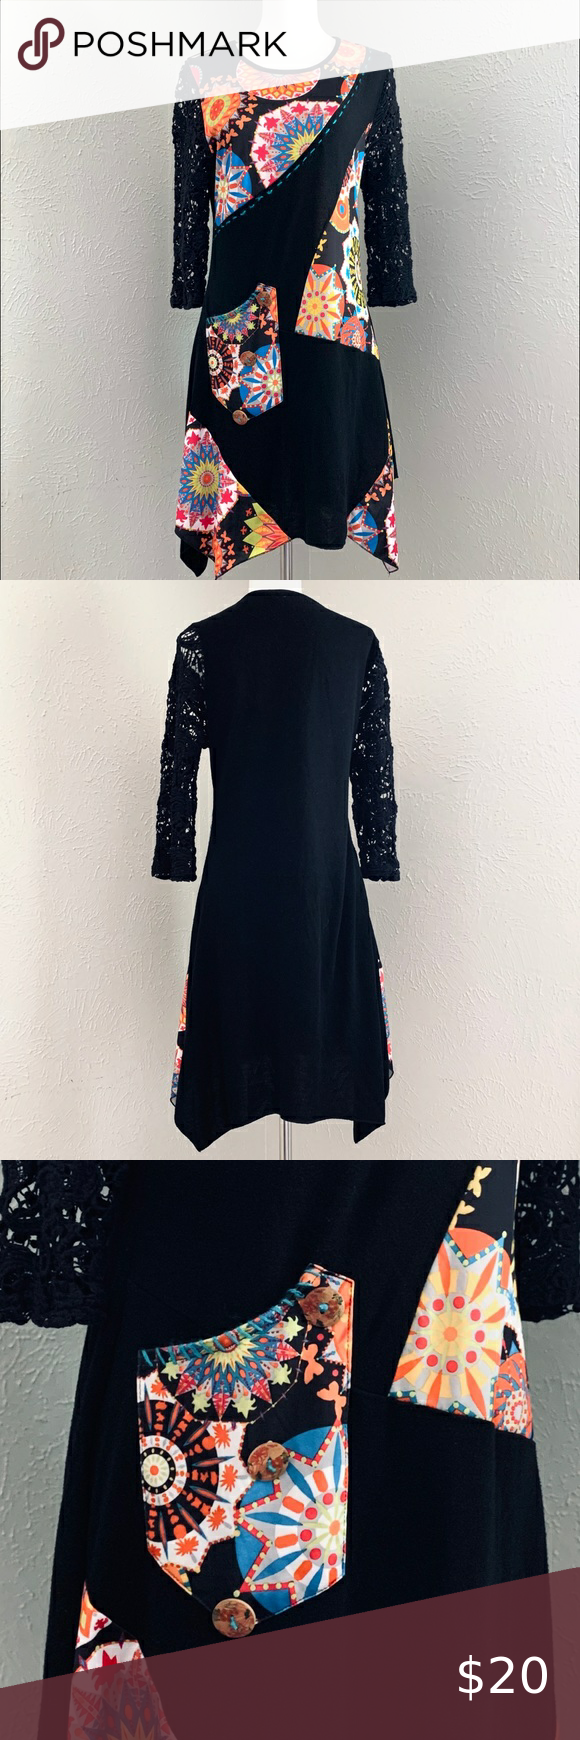 "Radzoli Art-to-wear tunic - Black - Size medium Radzoli Wearable art tunic with a long-line asymmetric hem  Women's size medium  Mixed material with unique details Great preowned condition Length approx 32""-35"" Underarm to underarm 17"" Radzoli Tops Tunics #wearableart"